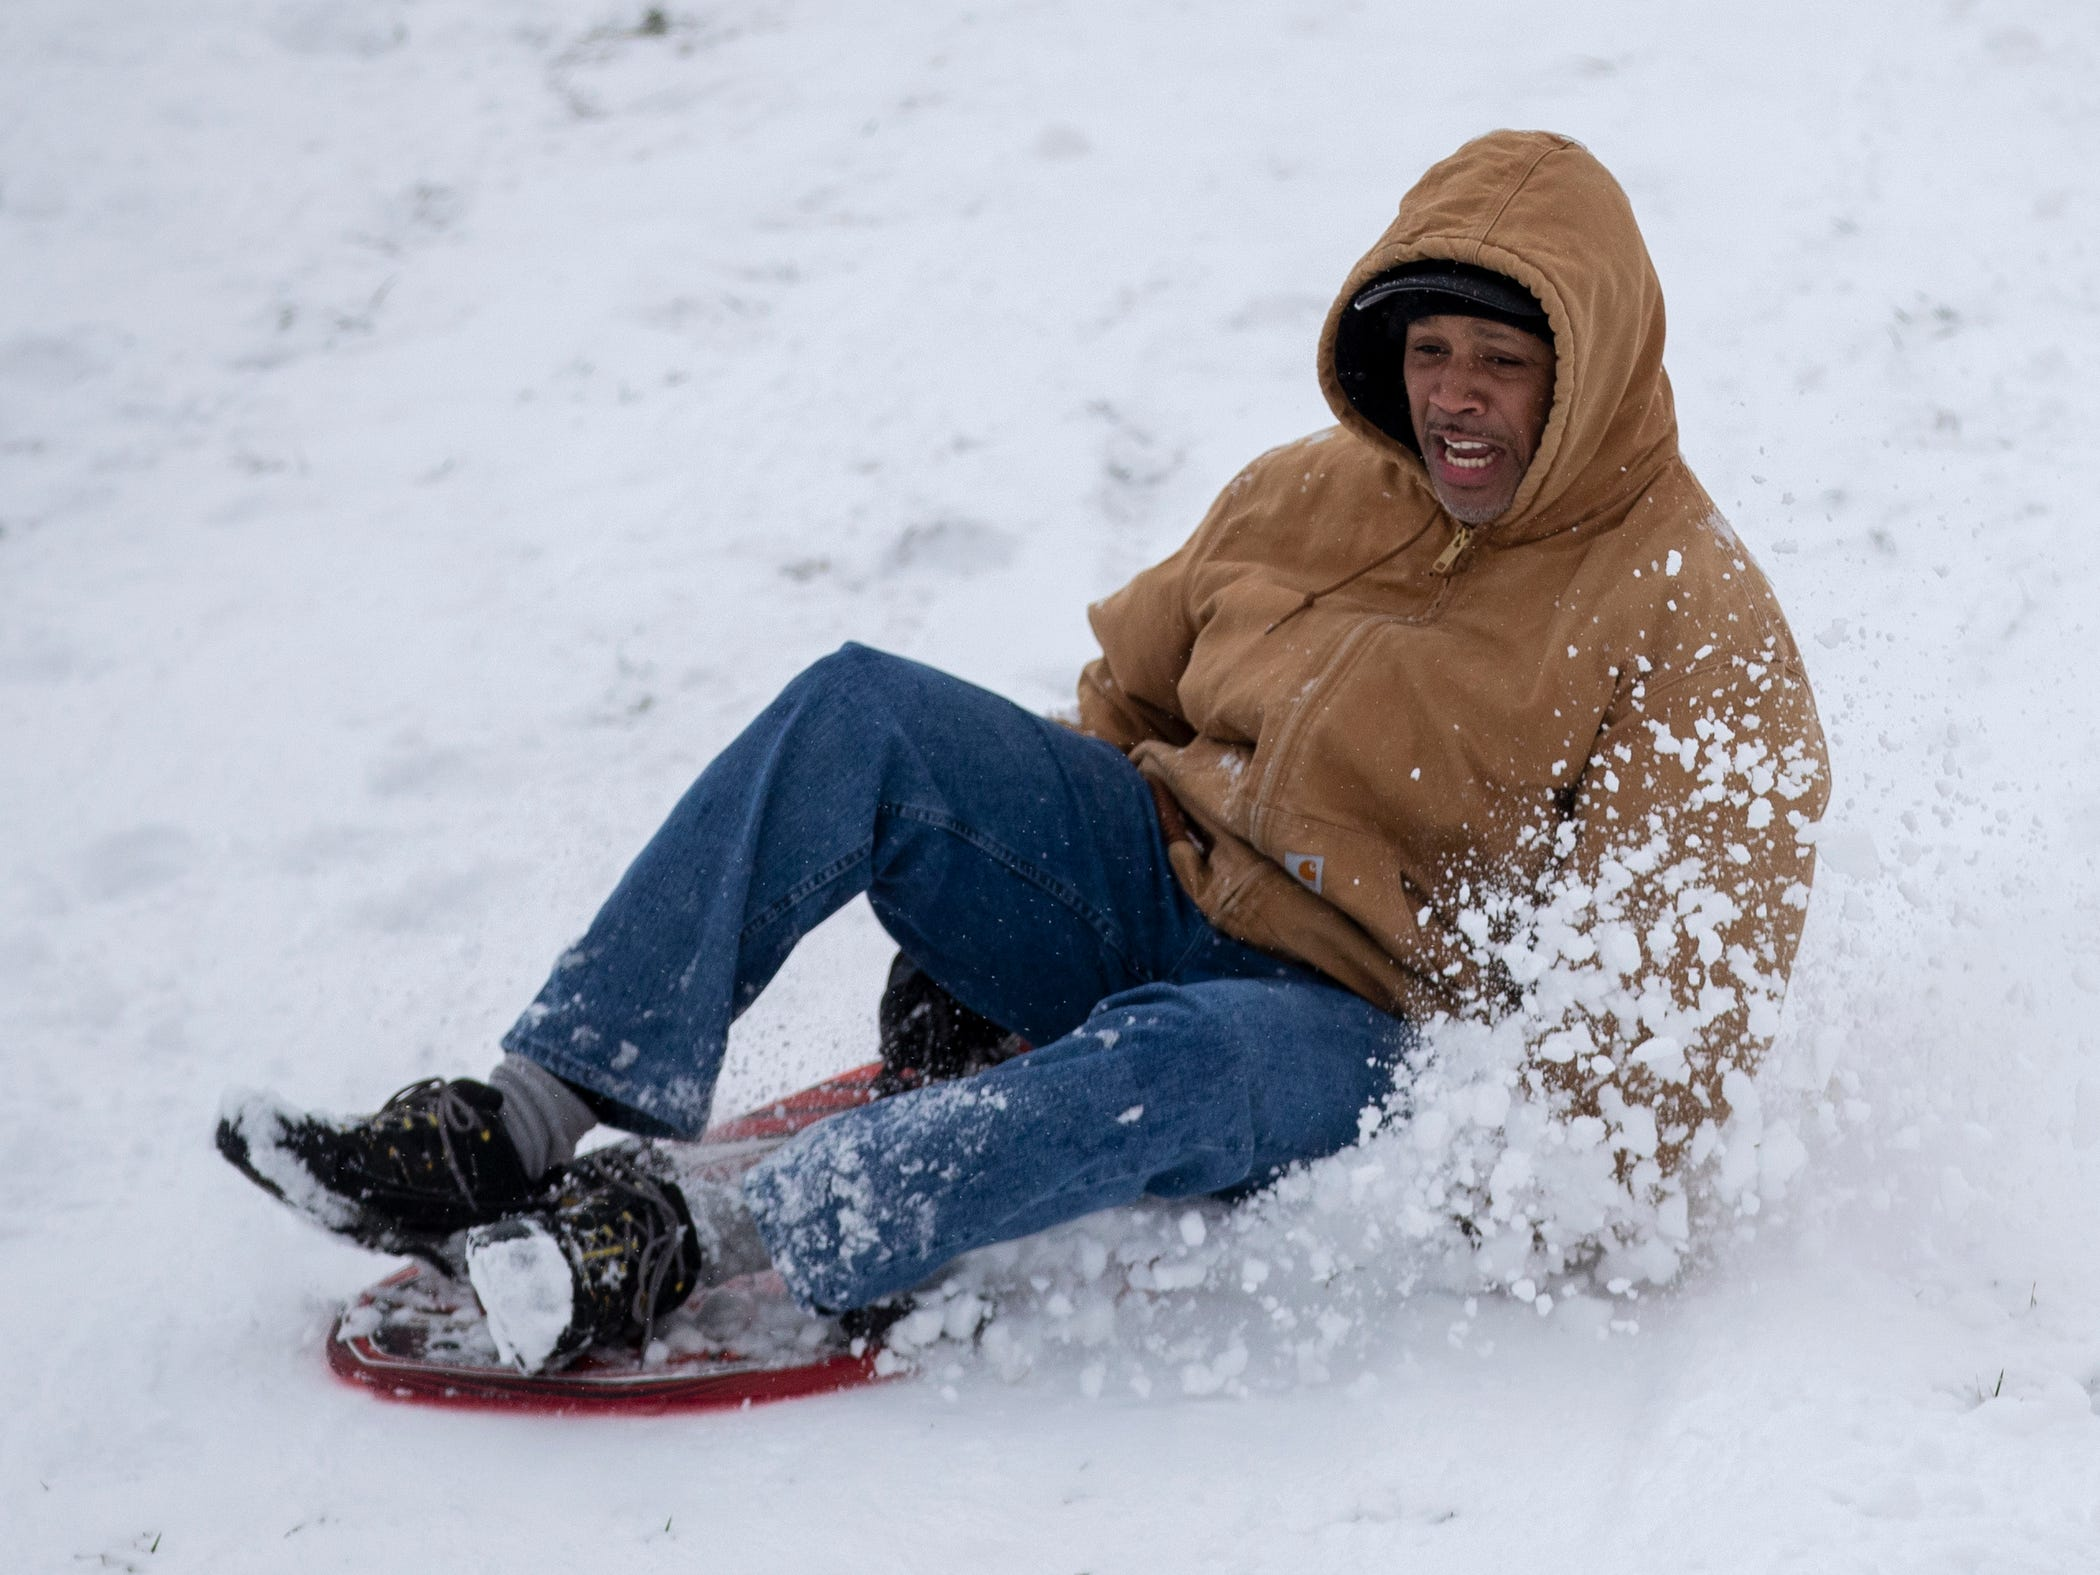 Damon Scott, 51, who'd brought his son and a friend to sled at Butler University, takes a run on a day where 5-7 inches of snow is expected to fall in Central Indiana, Indianapolis, Saturday, Jan. 12, 2019.